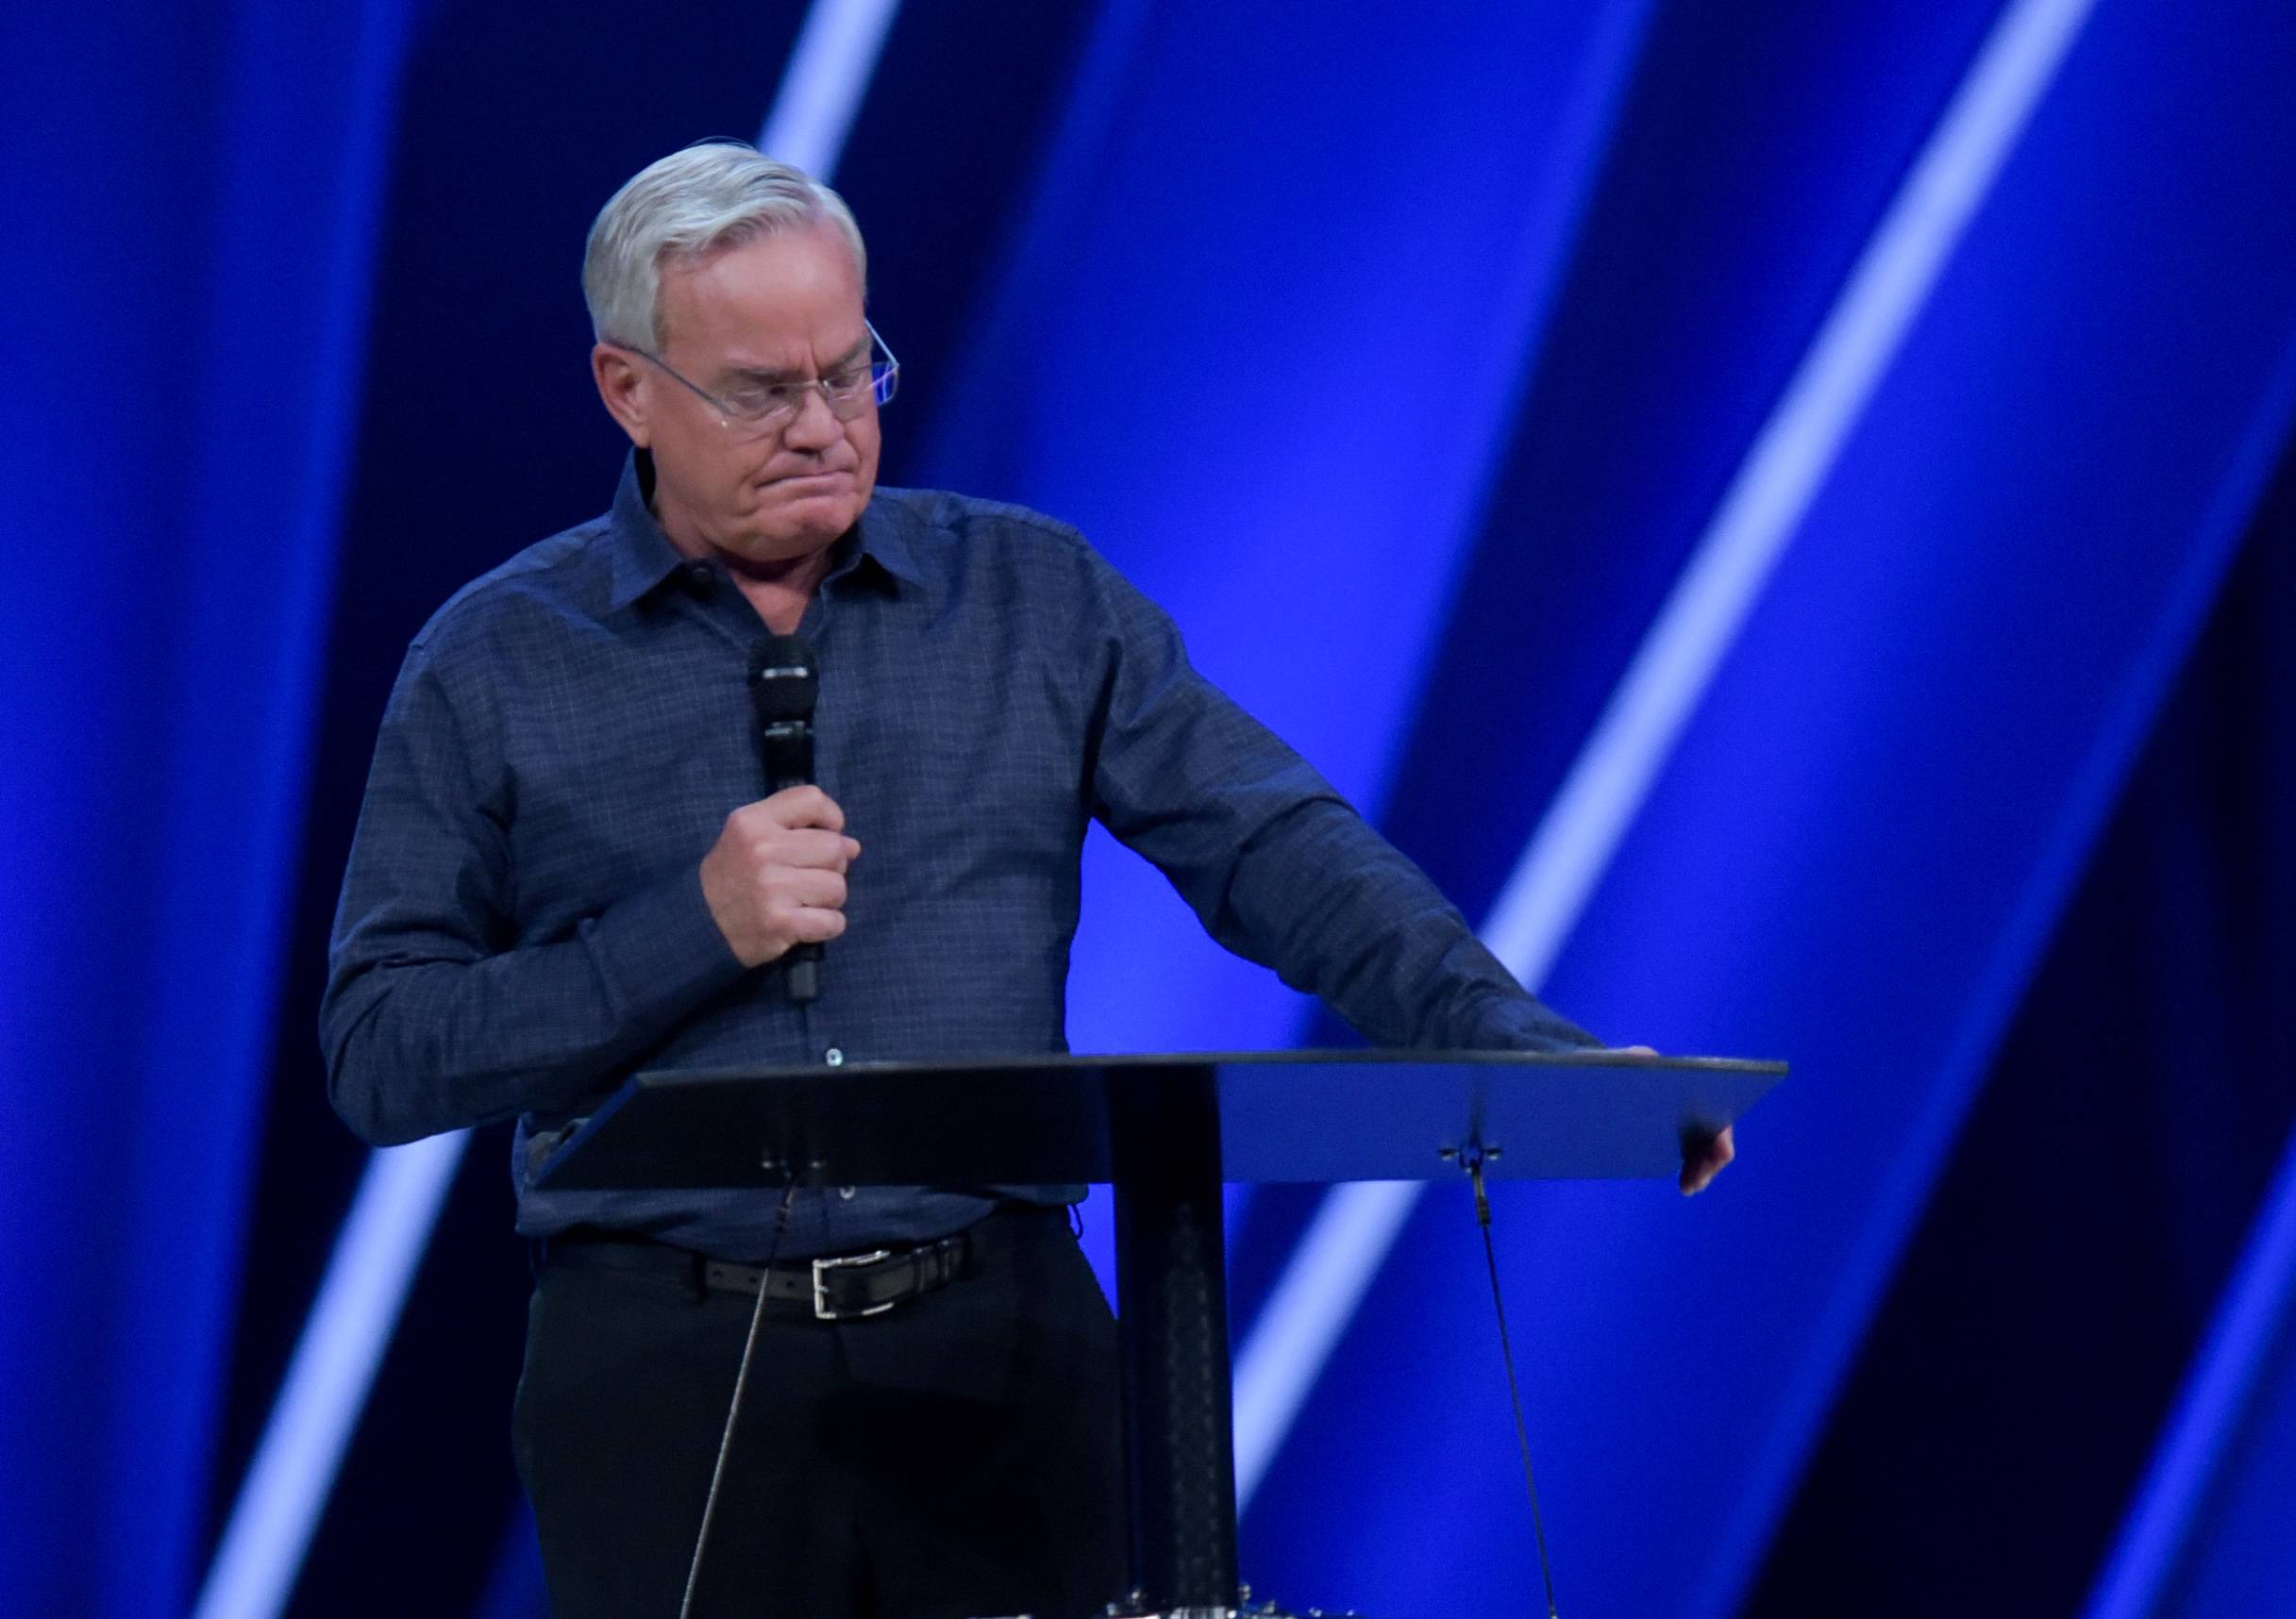 Amid misconduct charges, Hybels retiring from Willow Creek immediately